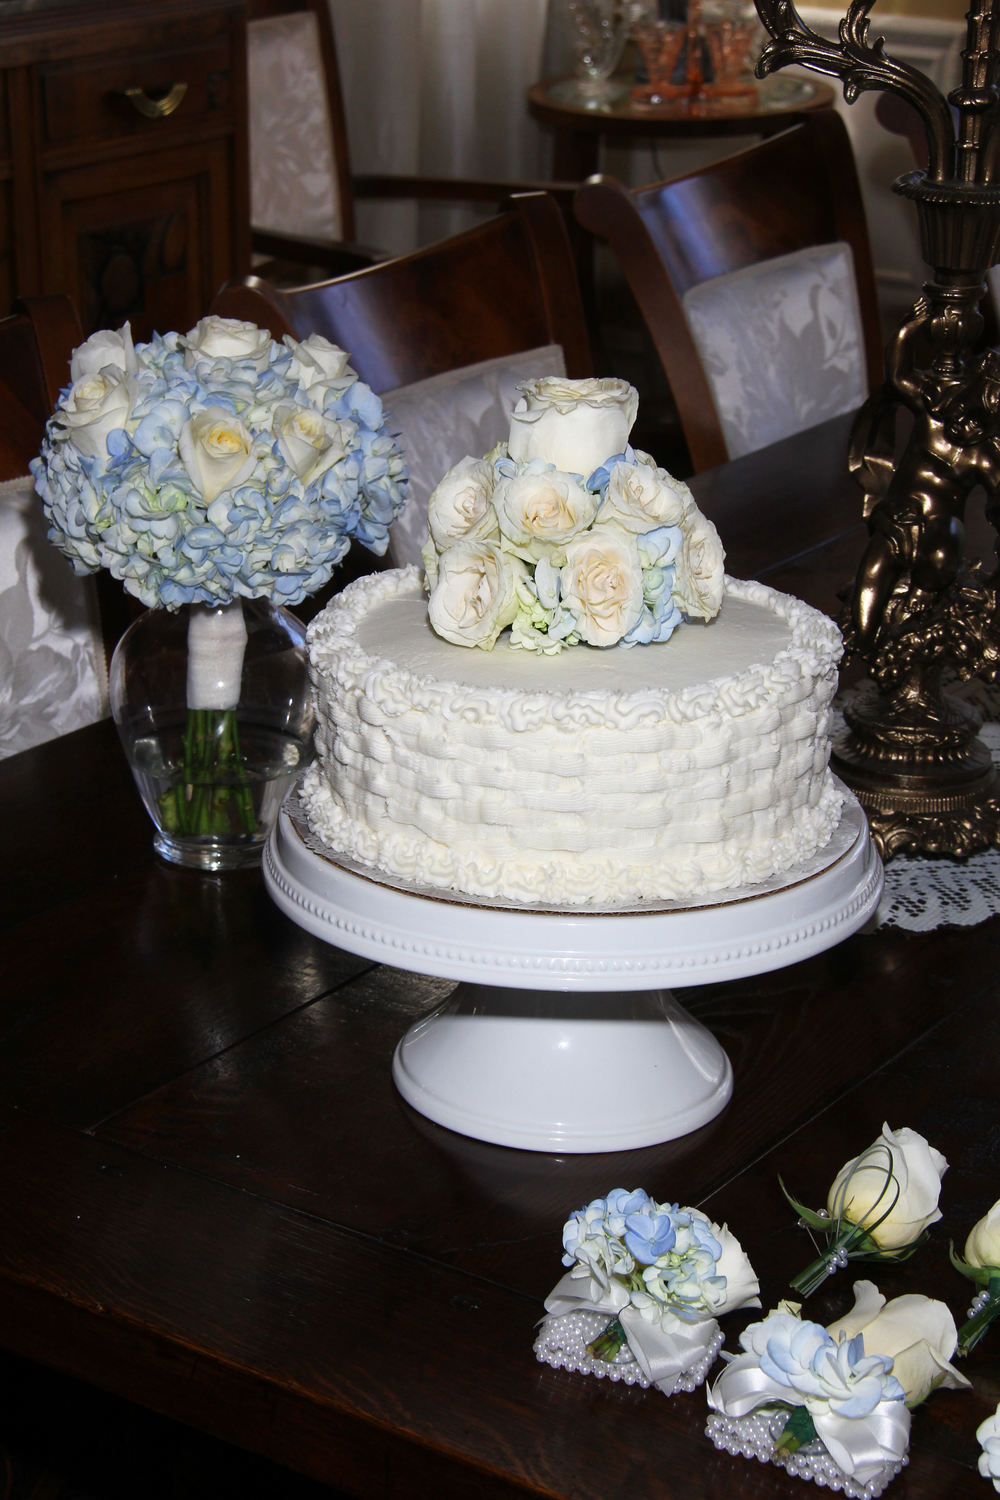 Wedding cake with roses, blue and white wedding